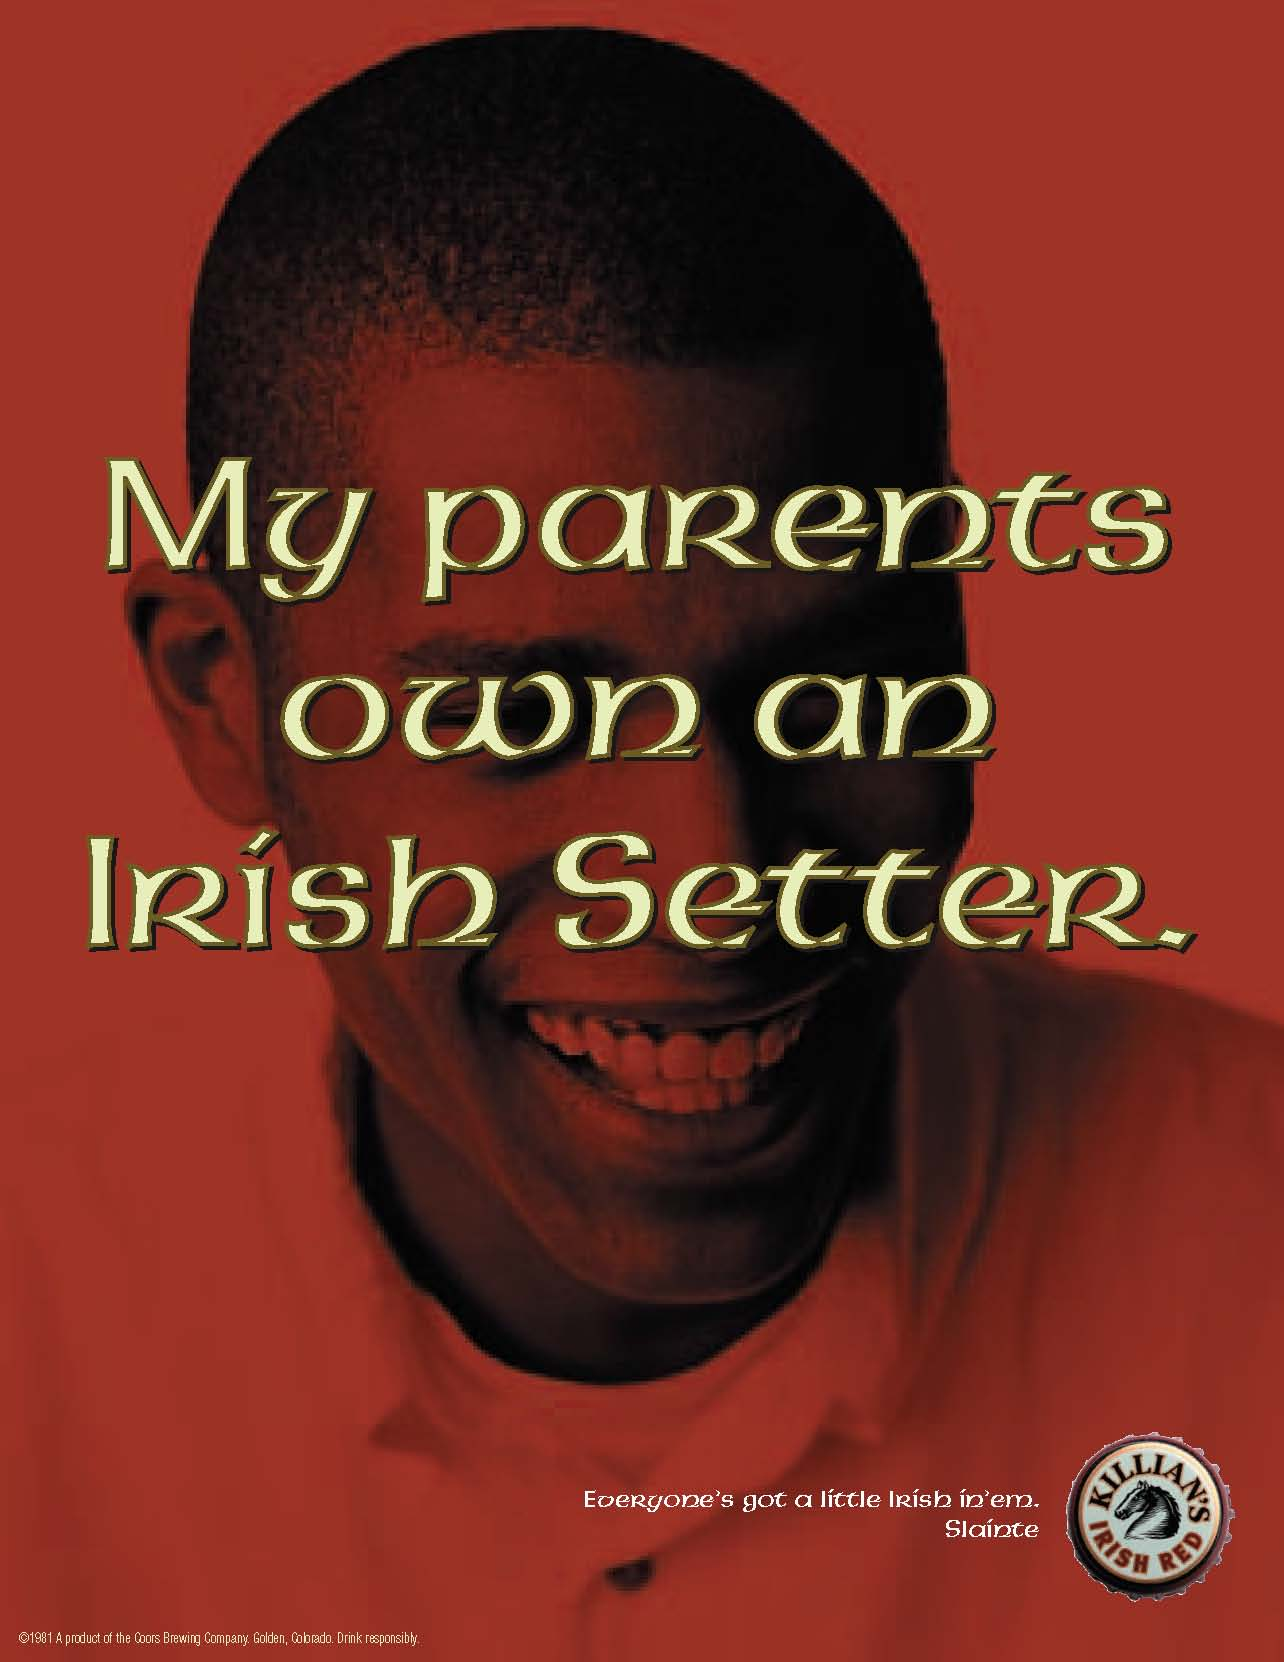 The Irish are very proud people. But I wanted to show how everyone in this world deep inside has a little Irish in them.